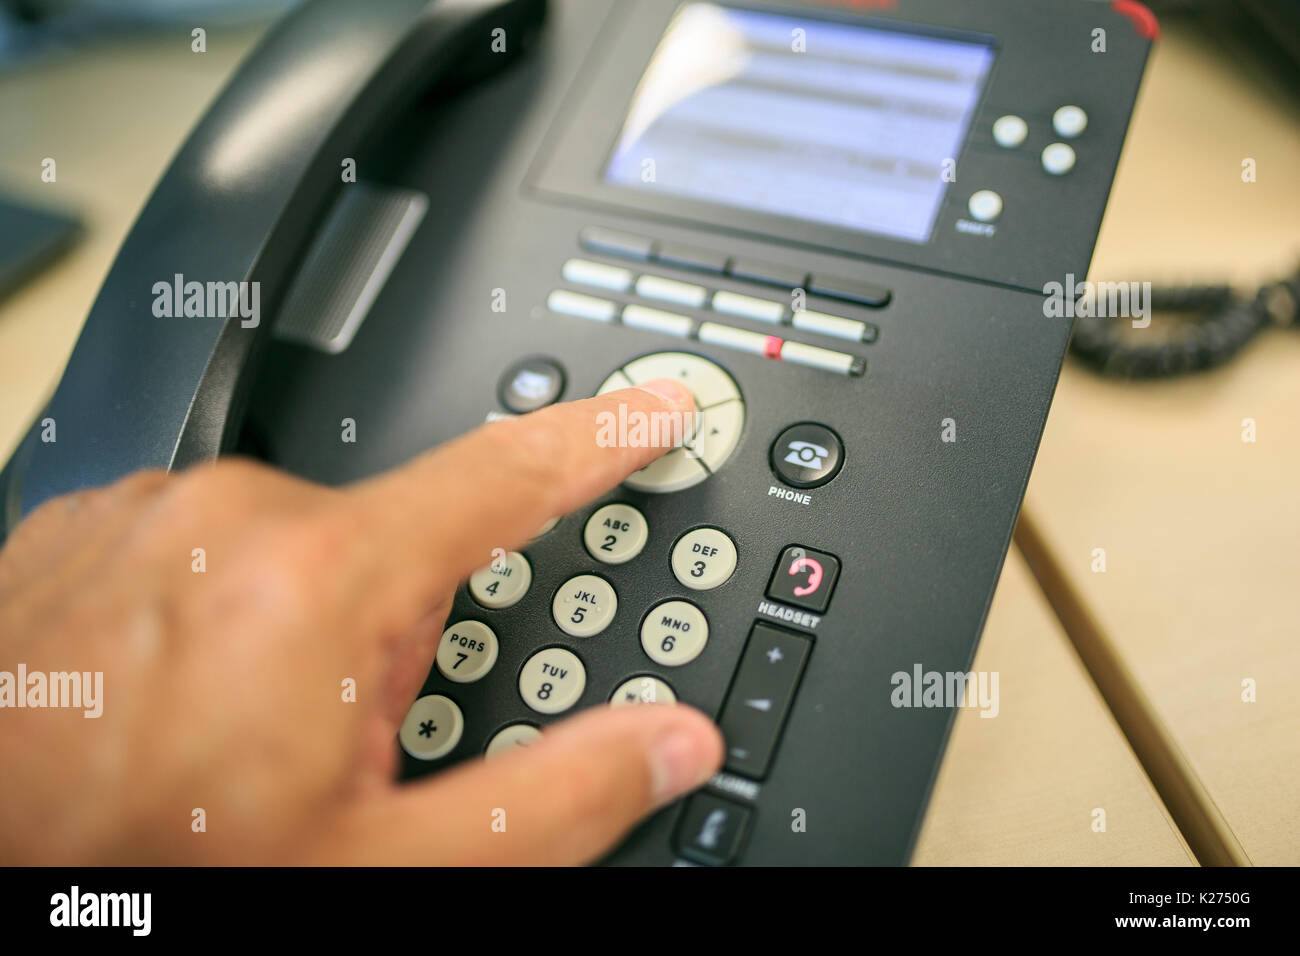 making a call in a black telephone - Stock Image